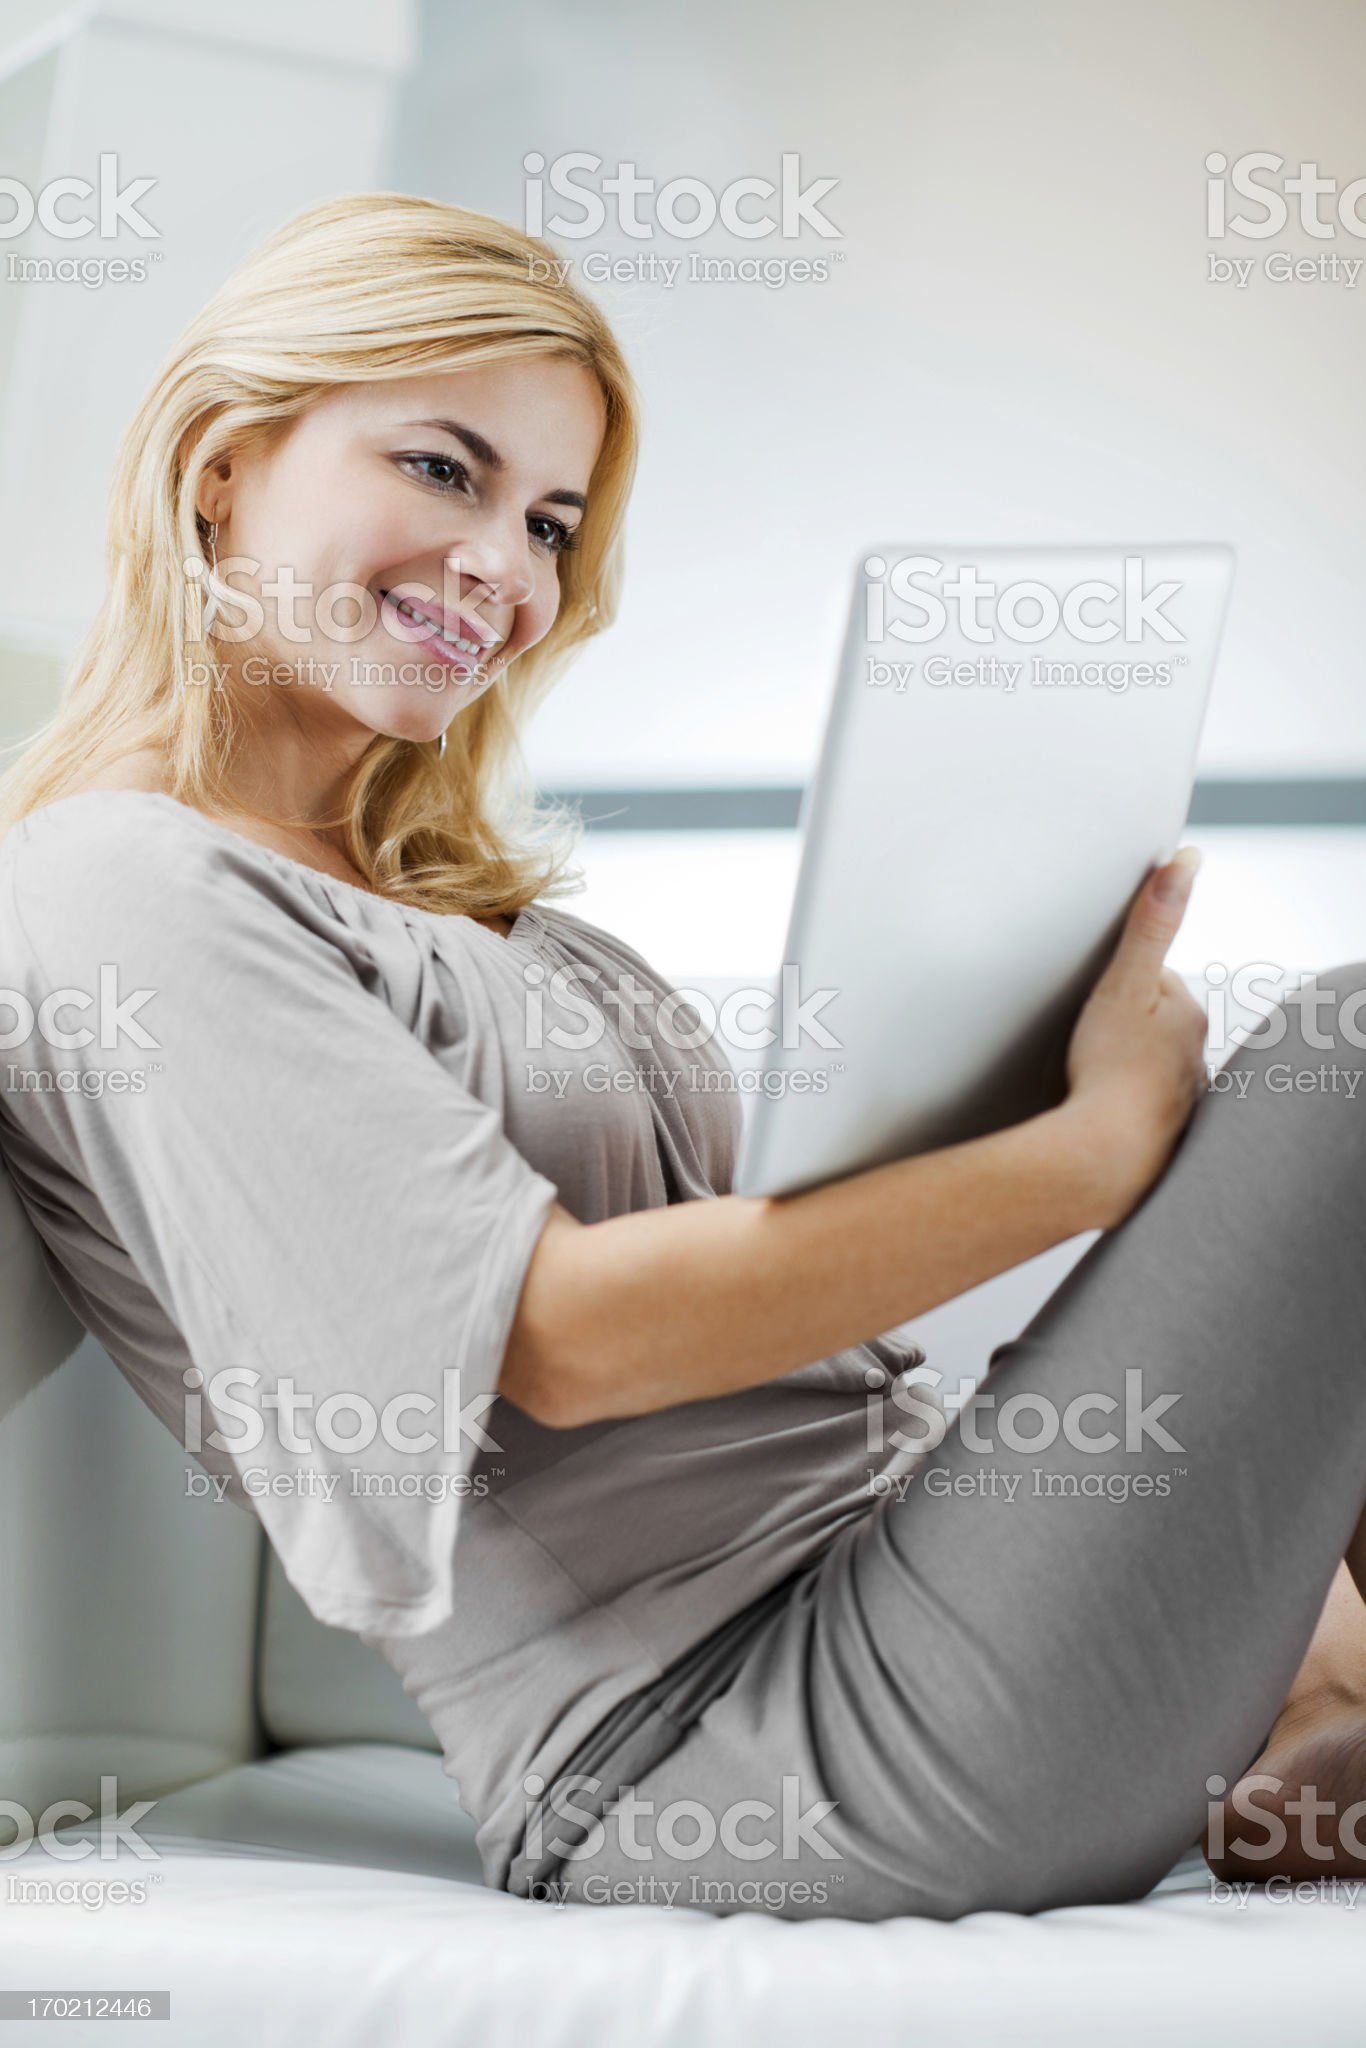 Beautiful young woman using her digital tablet at home. royalty-free stock photo